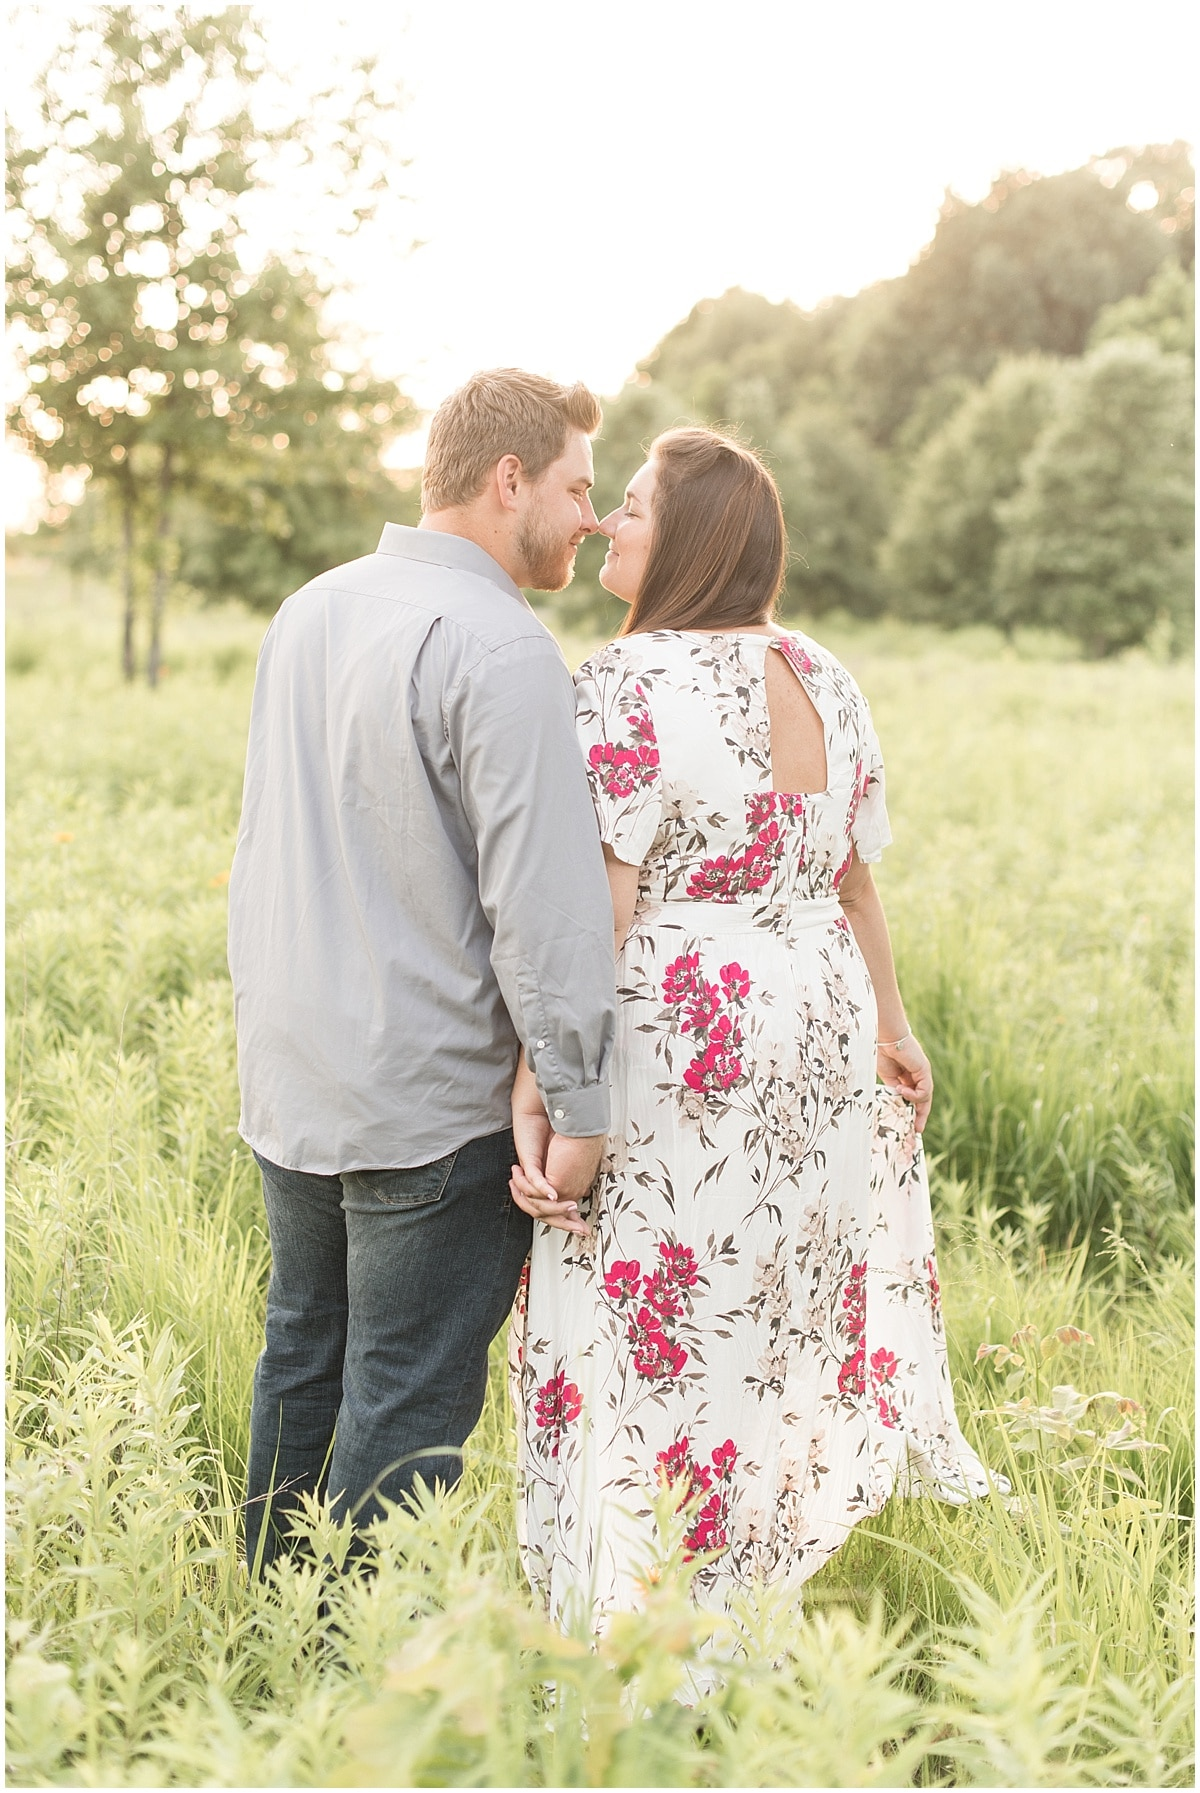 Victoria Rayburn Photography—a wedding photographer—took Chris & Ashley Peterson's engagement photos in Lafayette, Indiana.